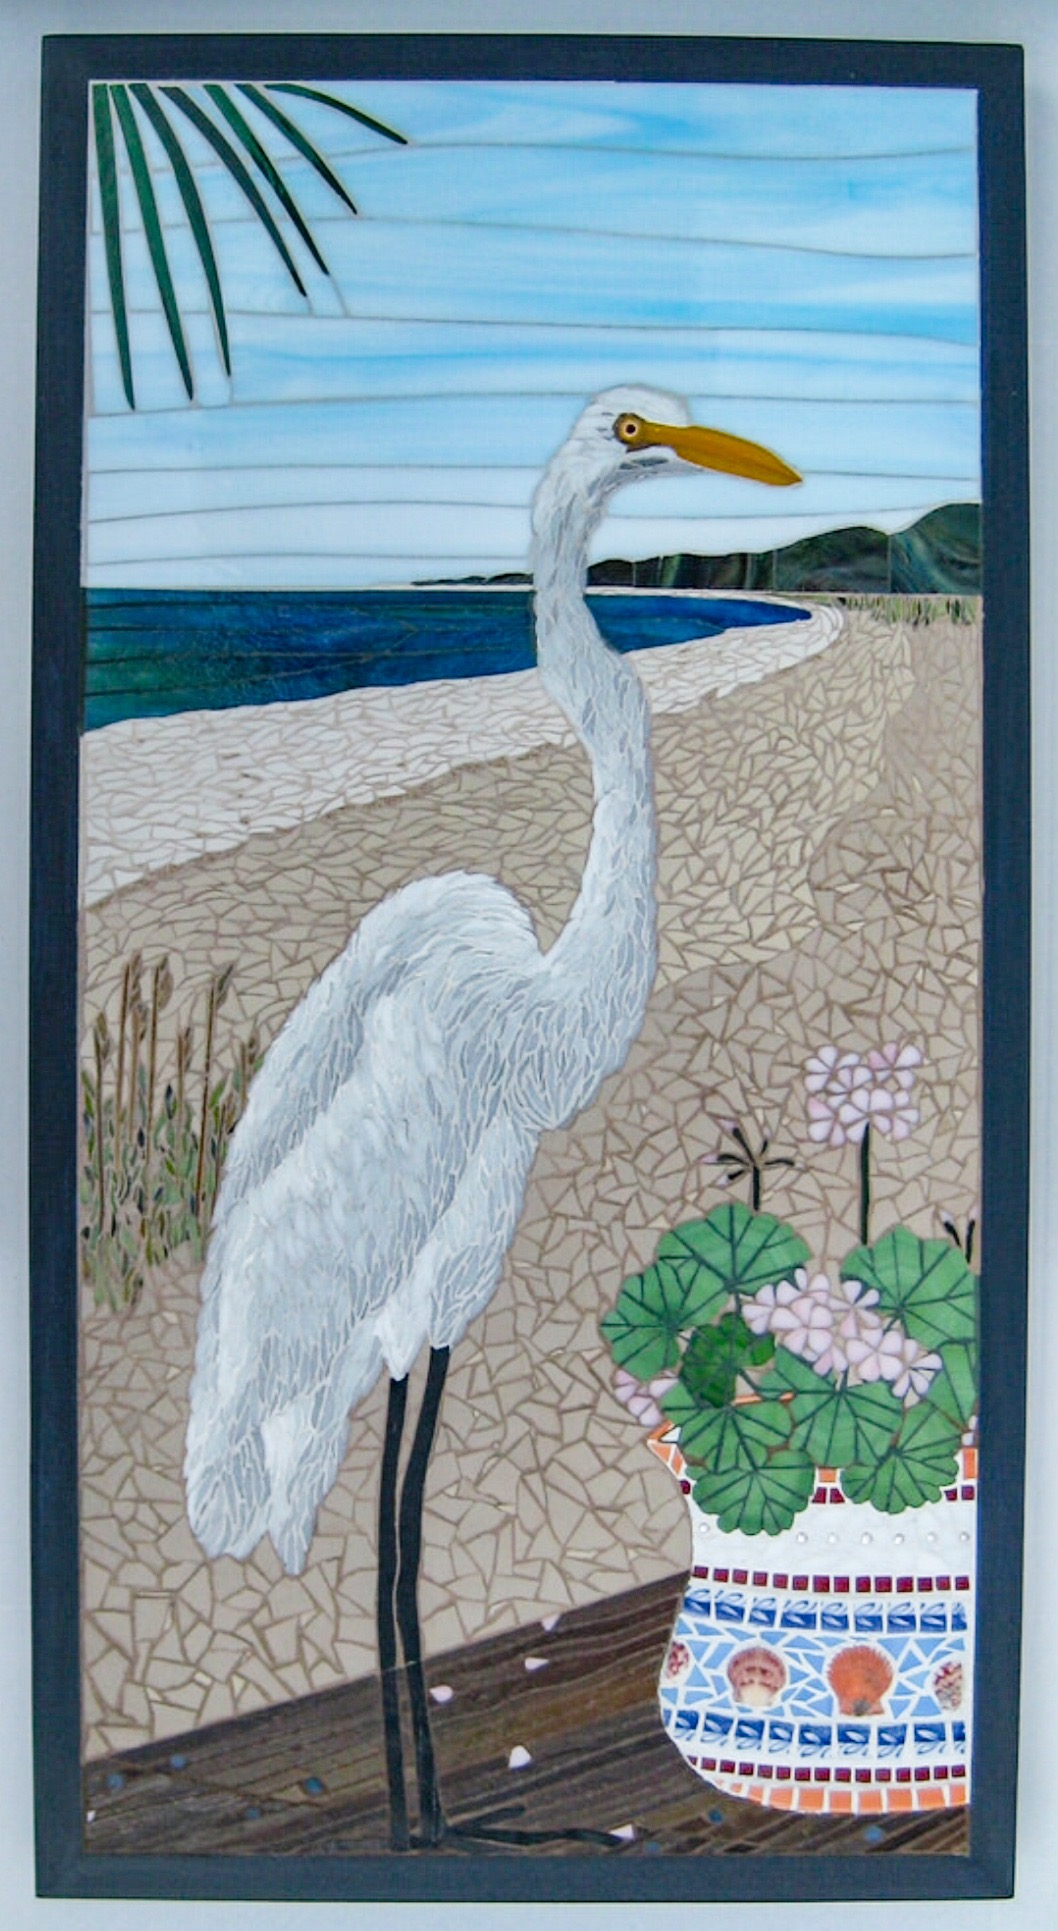 Bird theme mosaic Art by Linda Pieroth Smith